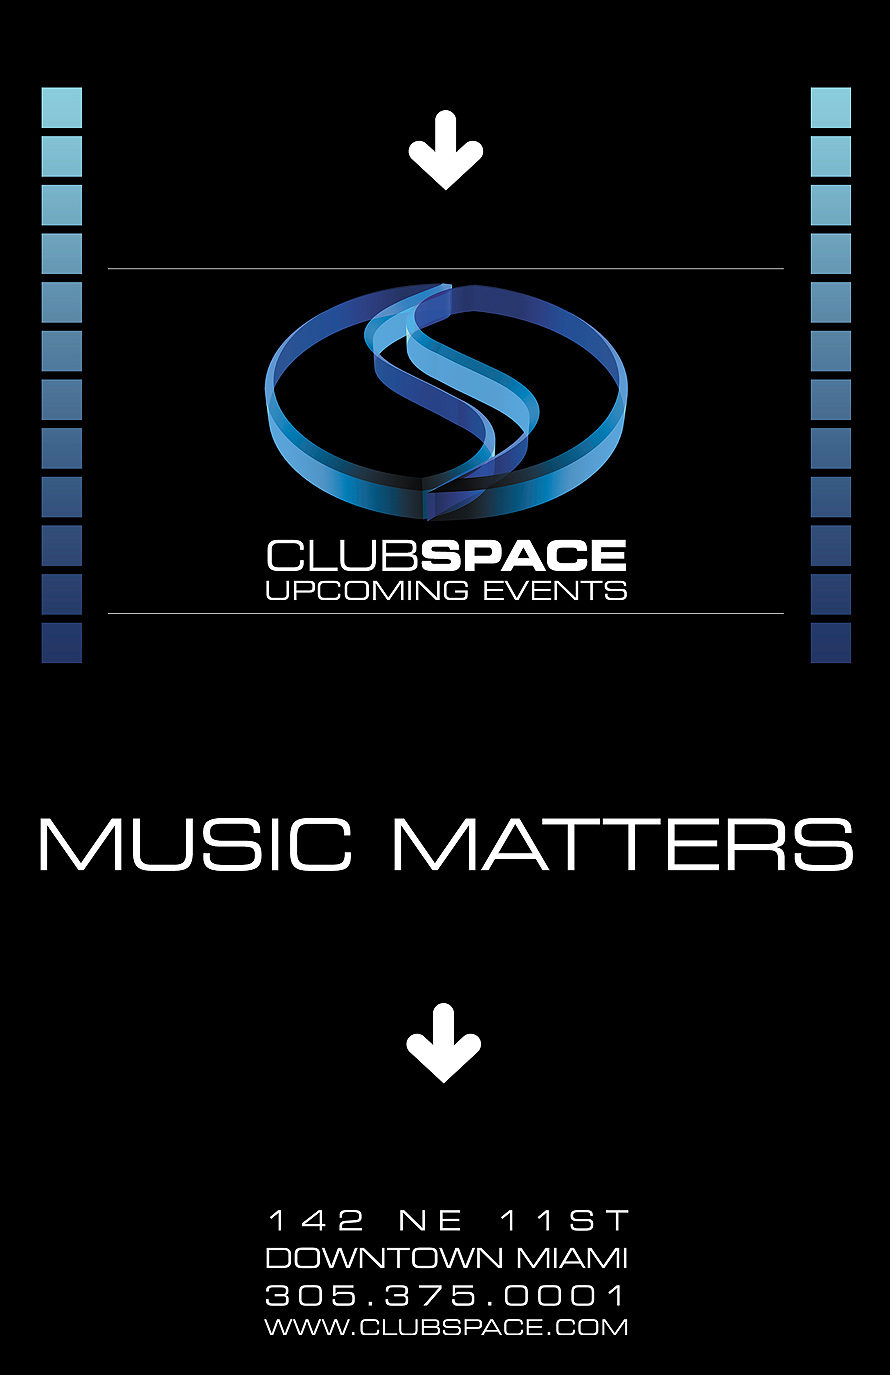 Club Space Upcoming Event Schedule